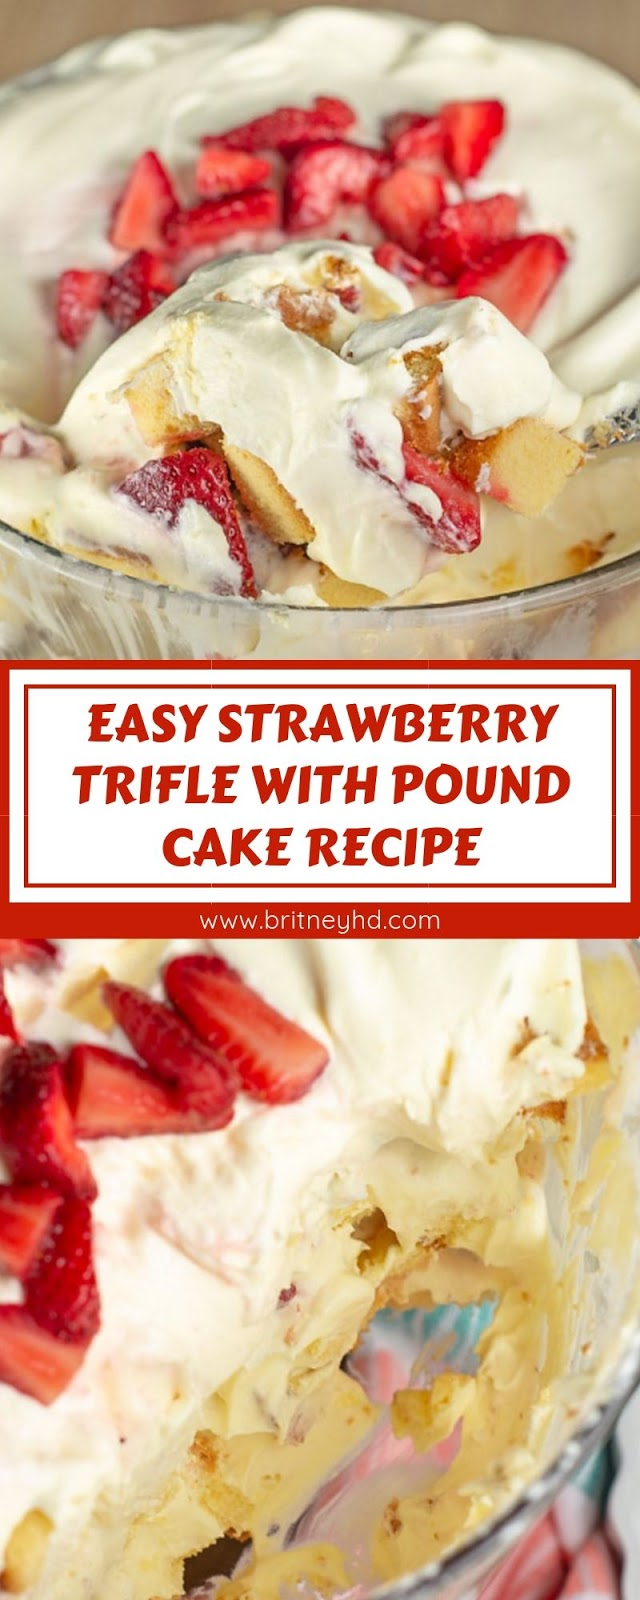 EASY STRAWBERRY TRIFLE WITH POUND CAKE RECIPE